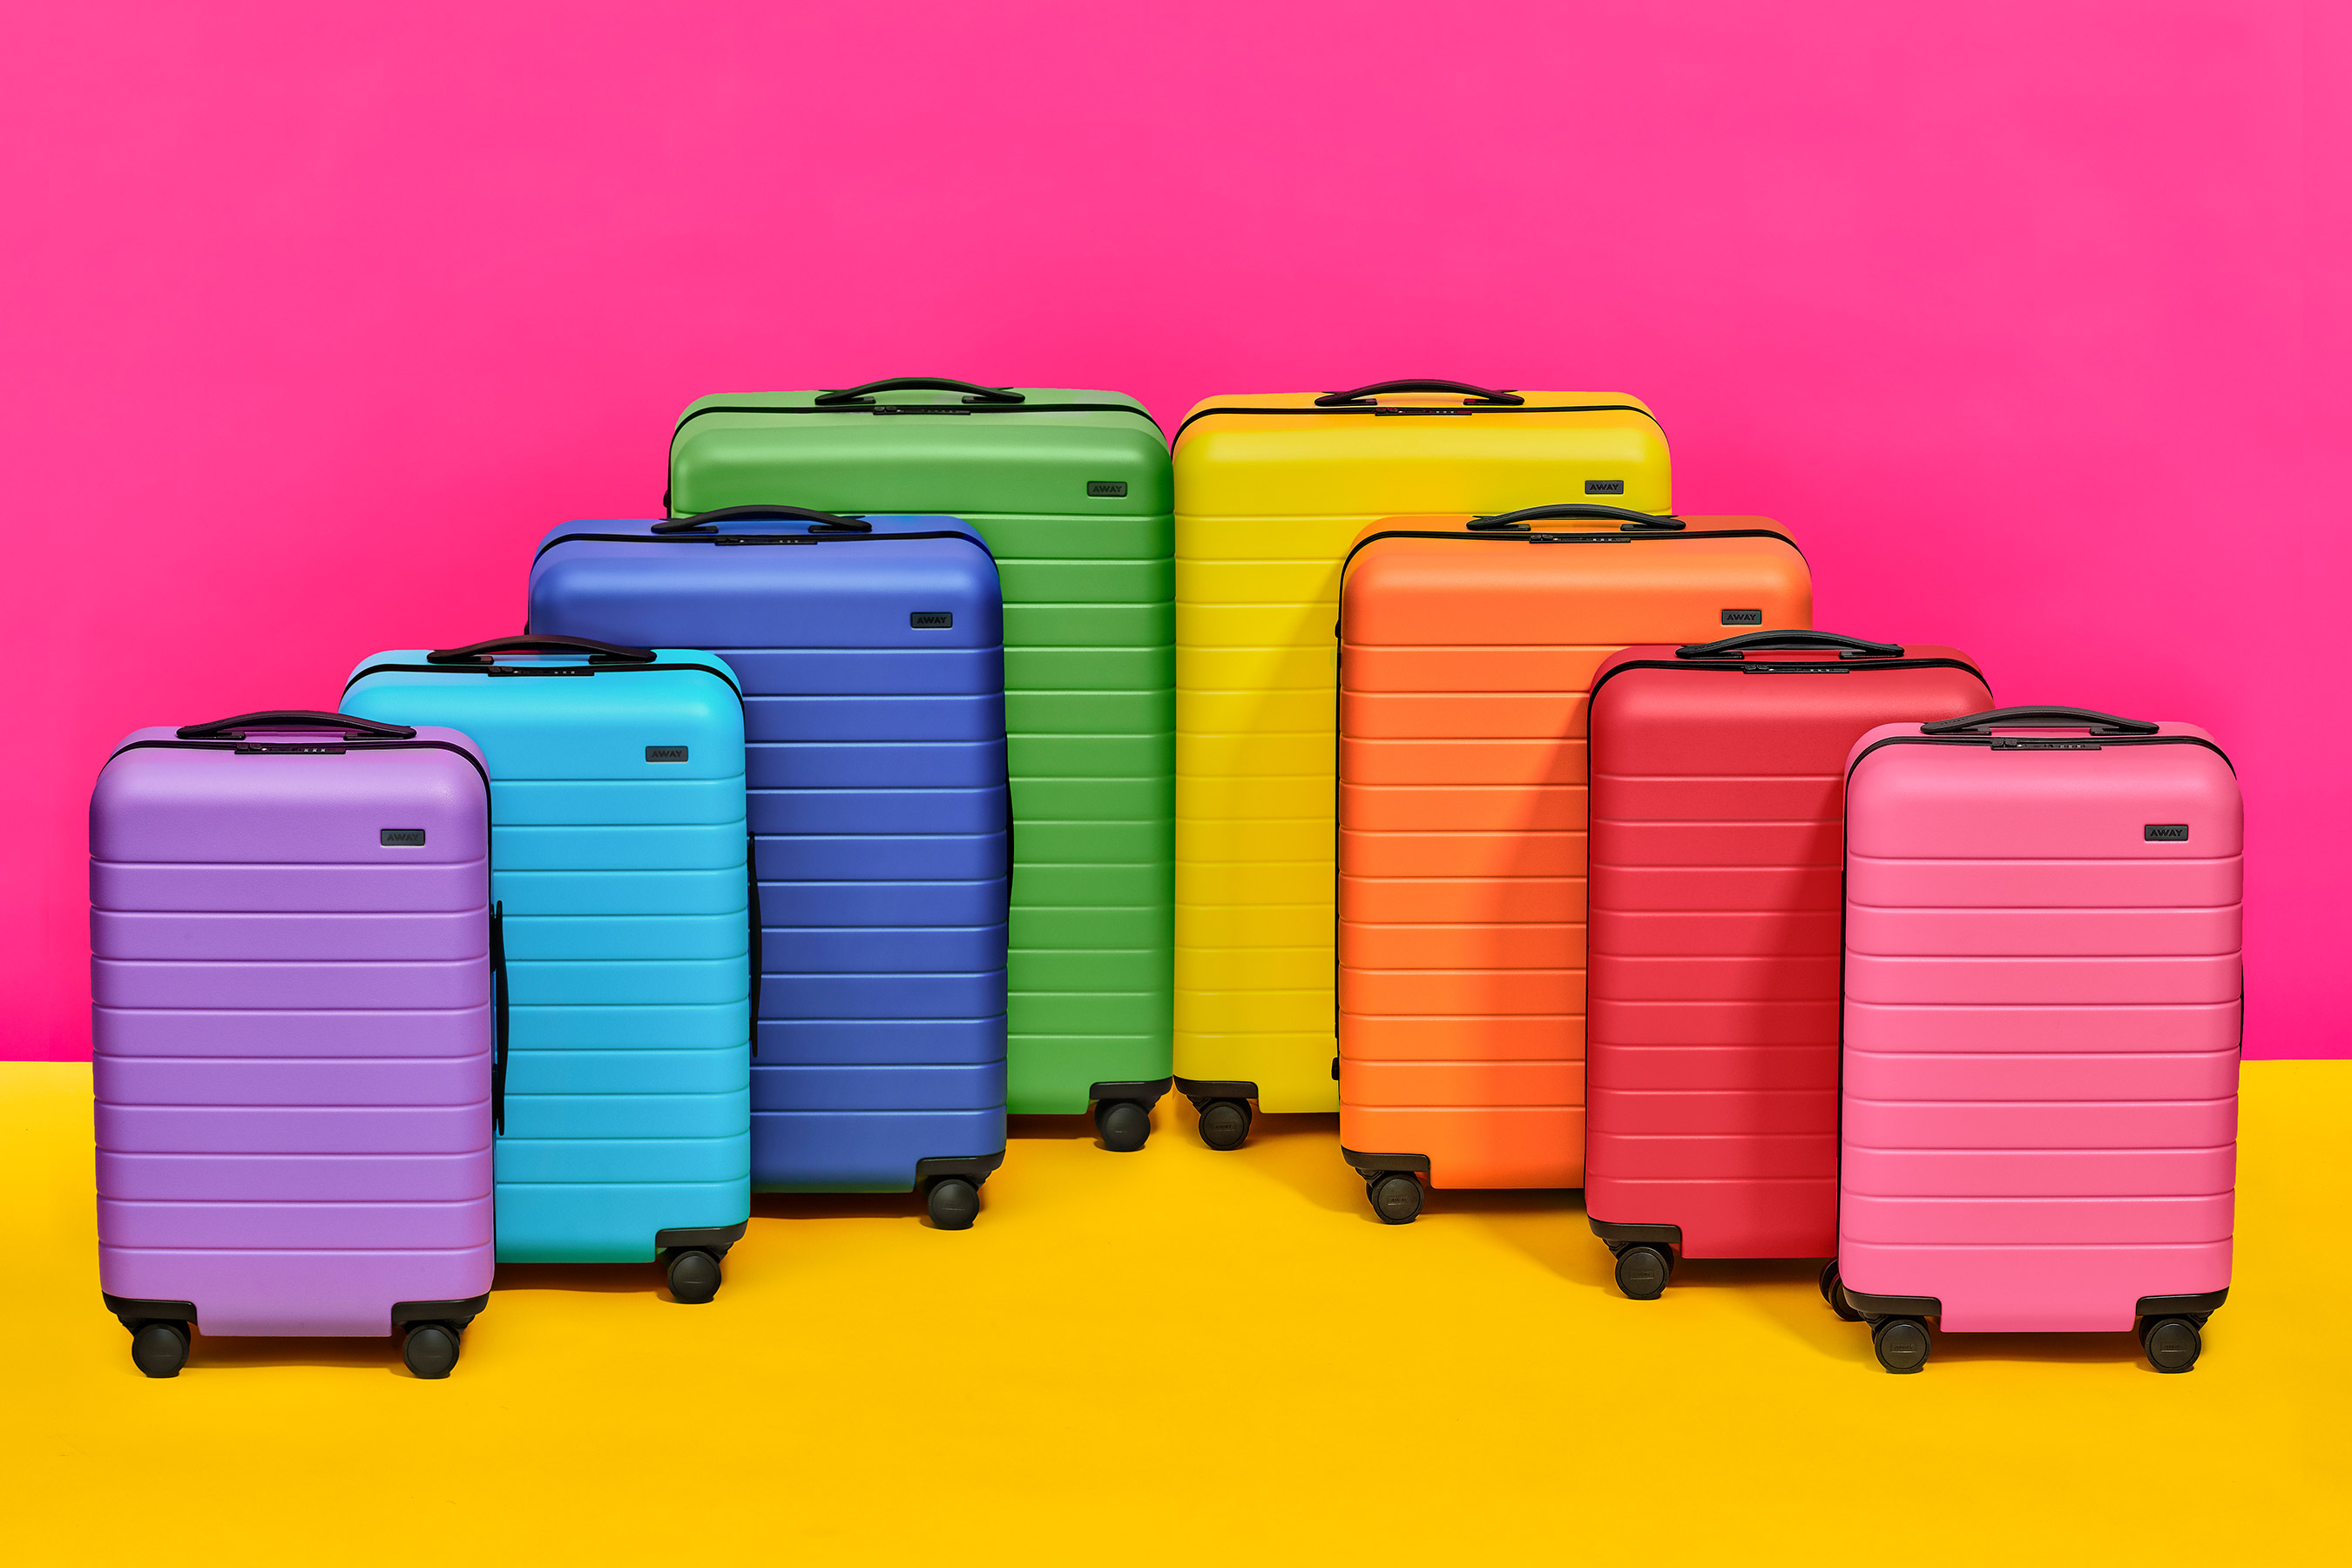 Away Luggage Just Launched the Rainbow Sprinkle Collection of Our Dreams